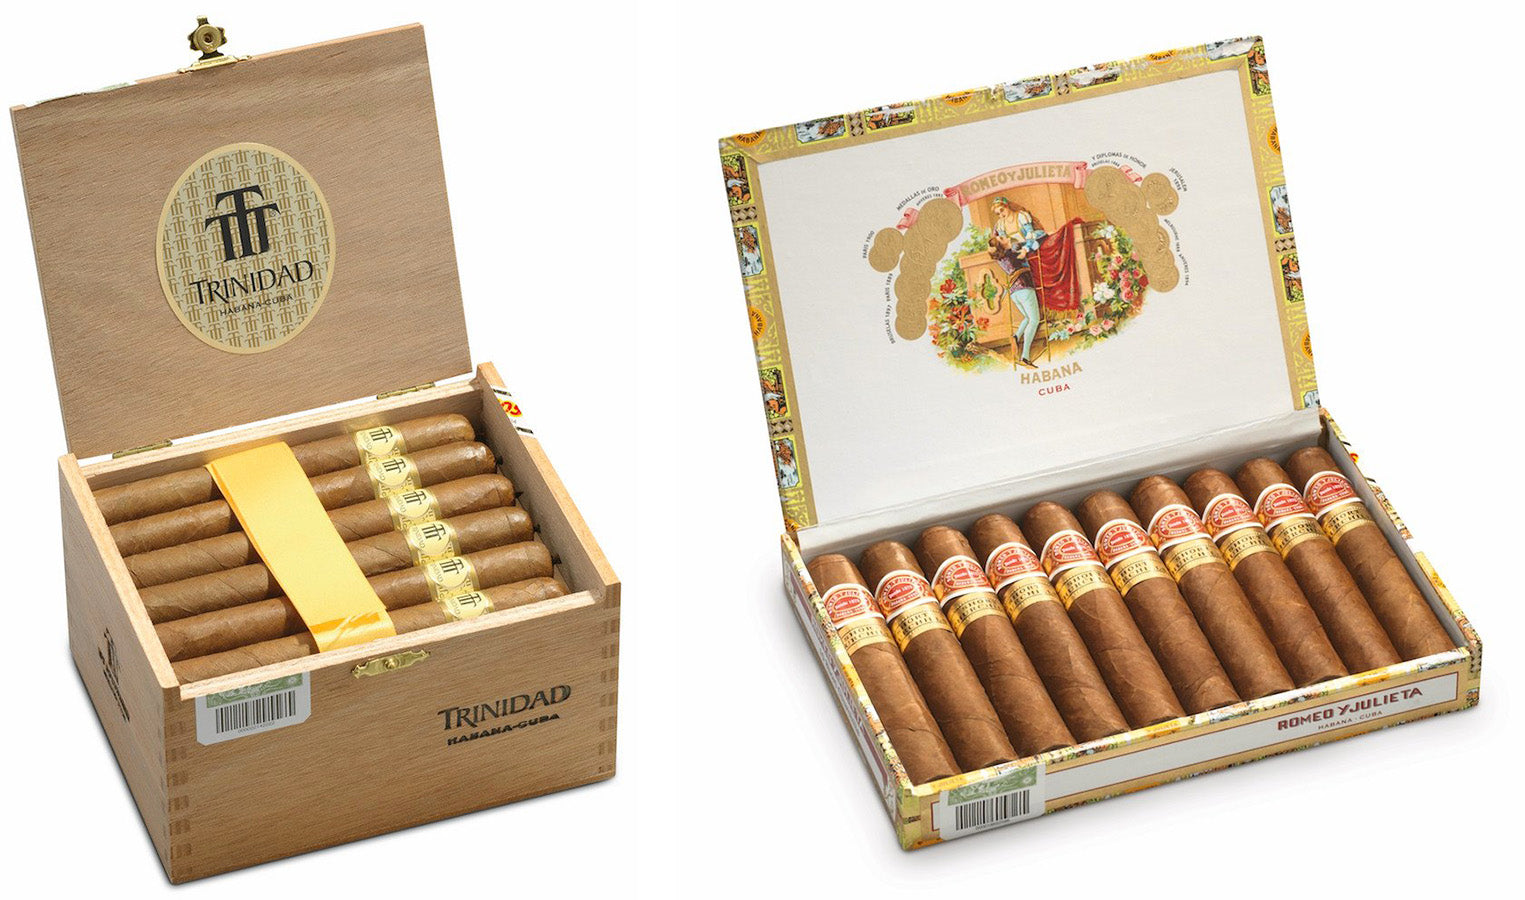 trinidad coloniales cigar and romeo y julieta short churchills cigar egm cigars